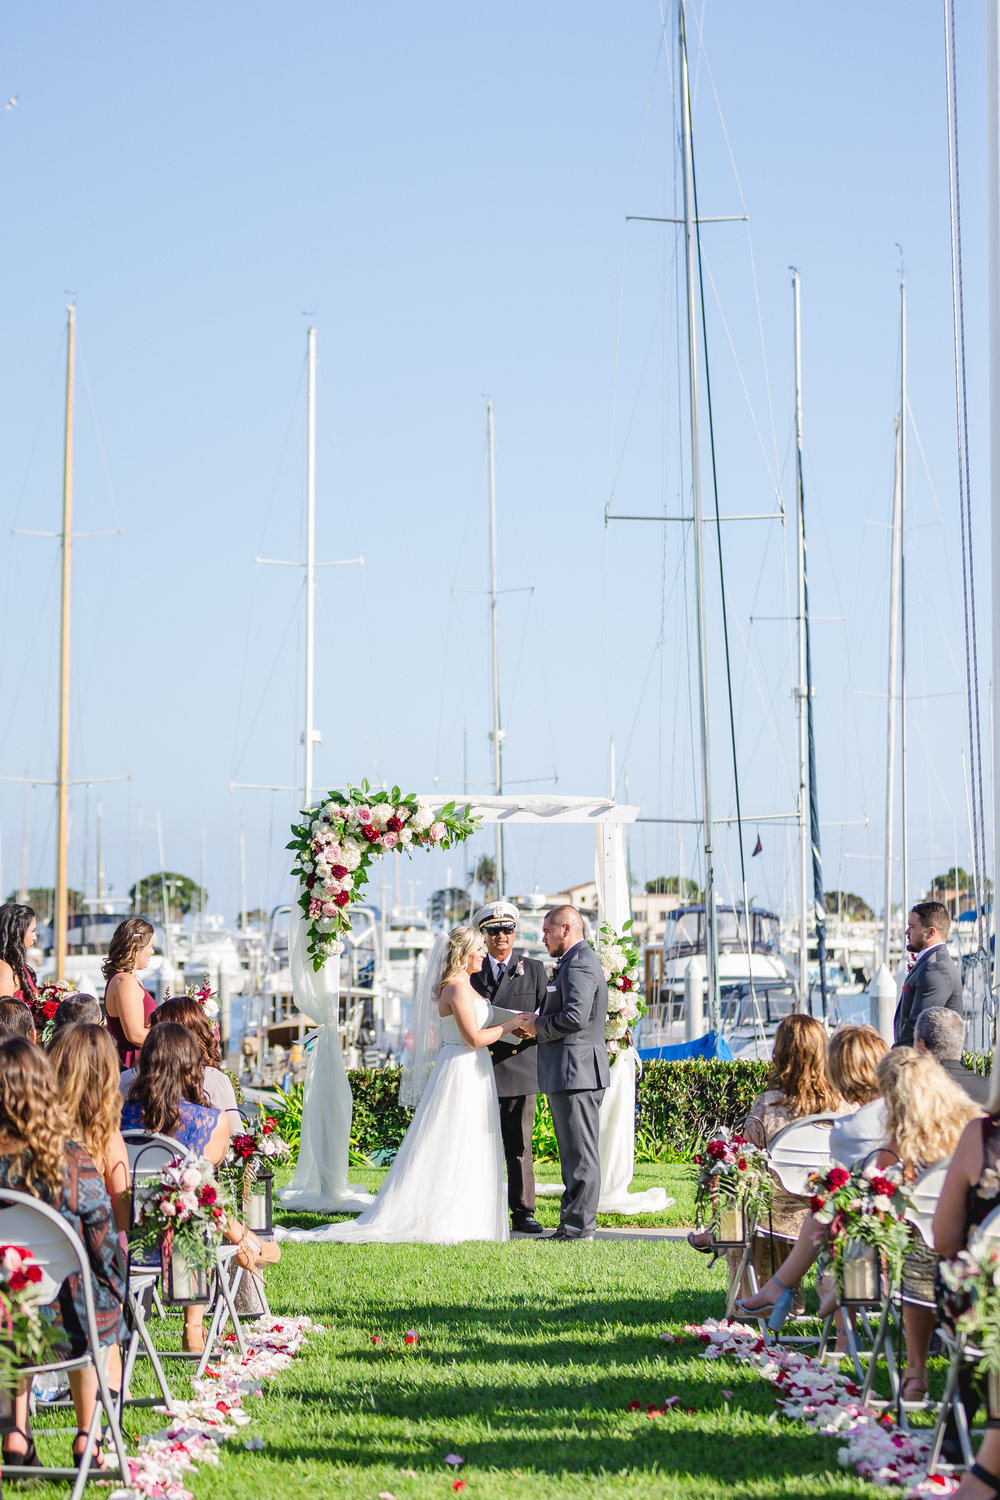 Becca_Mark_Southwestern_Yacht_Club_Wedding_308.jpg